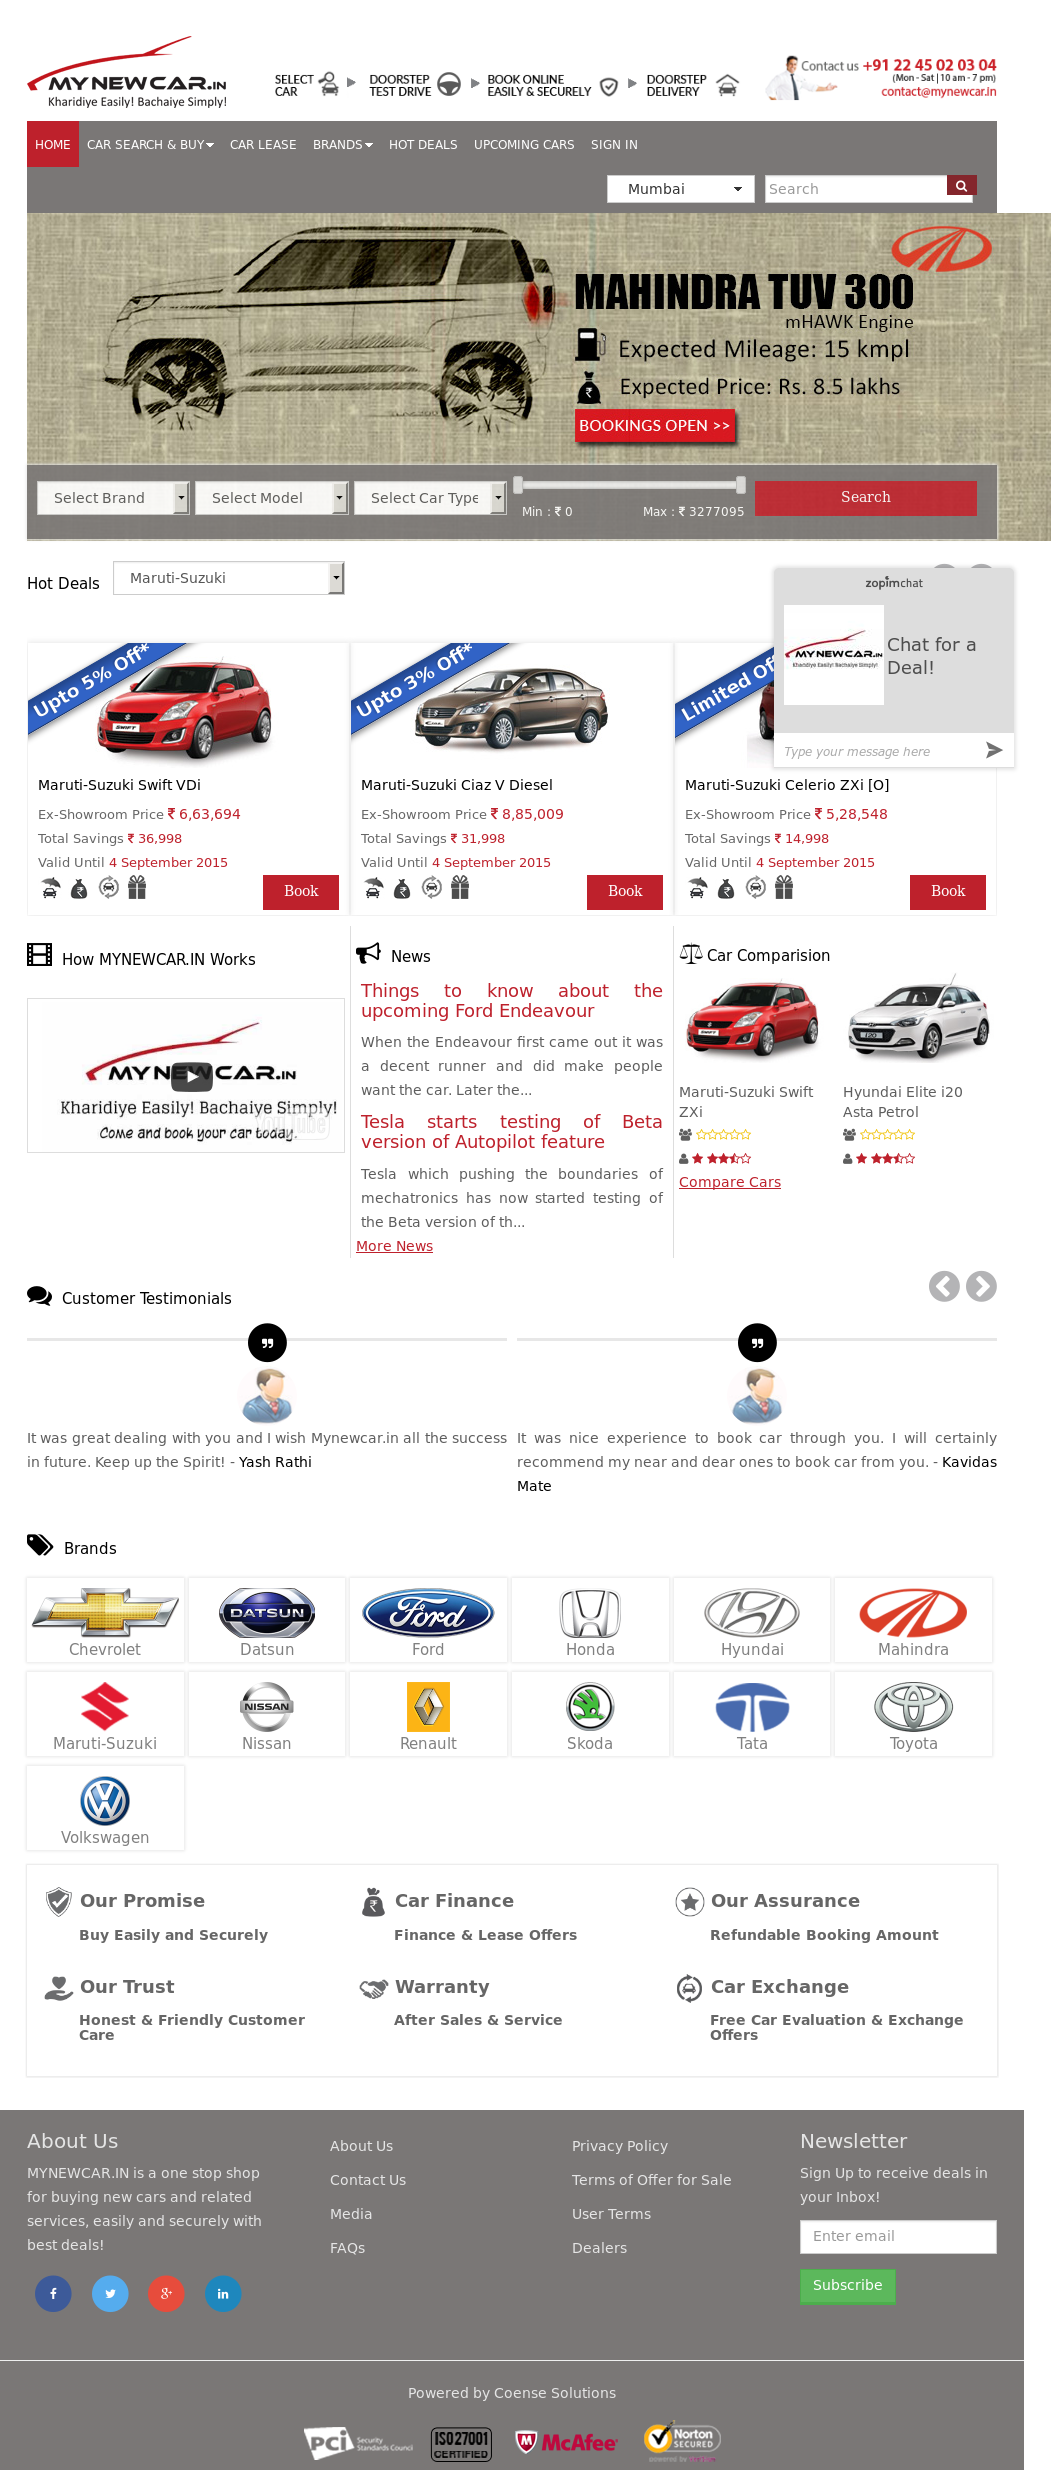 Mynewcar Competitors, Revenue and Employees - Owler Company Profile